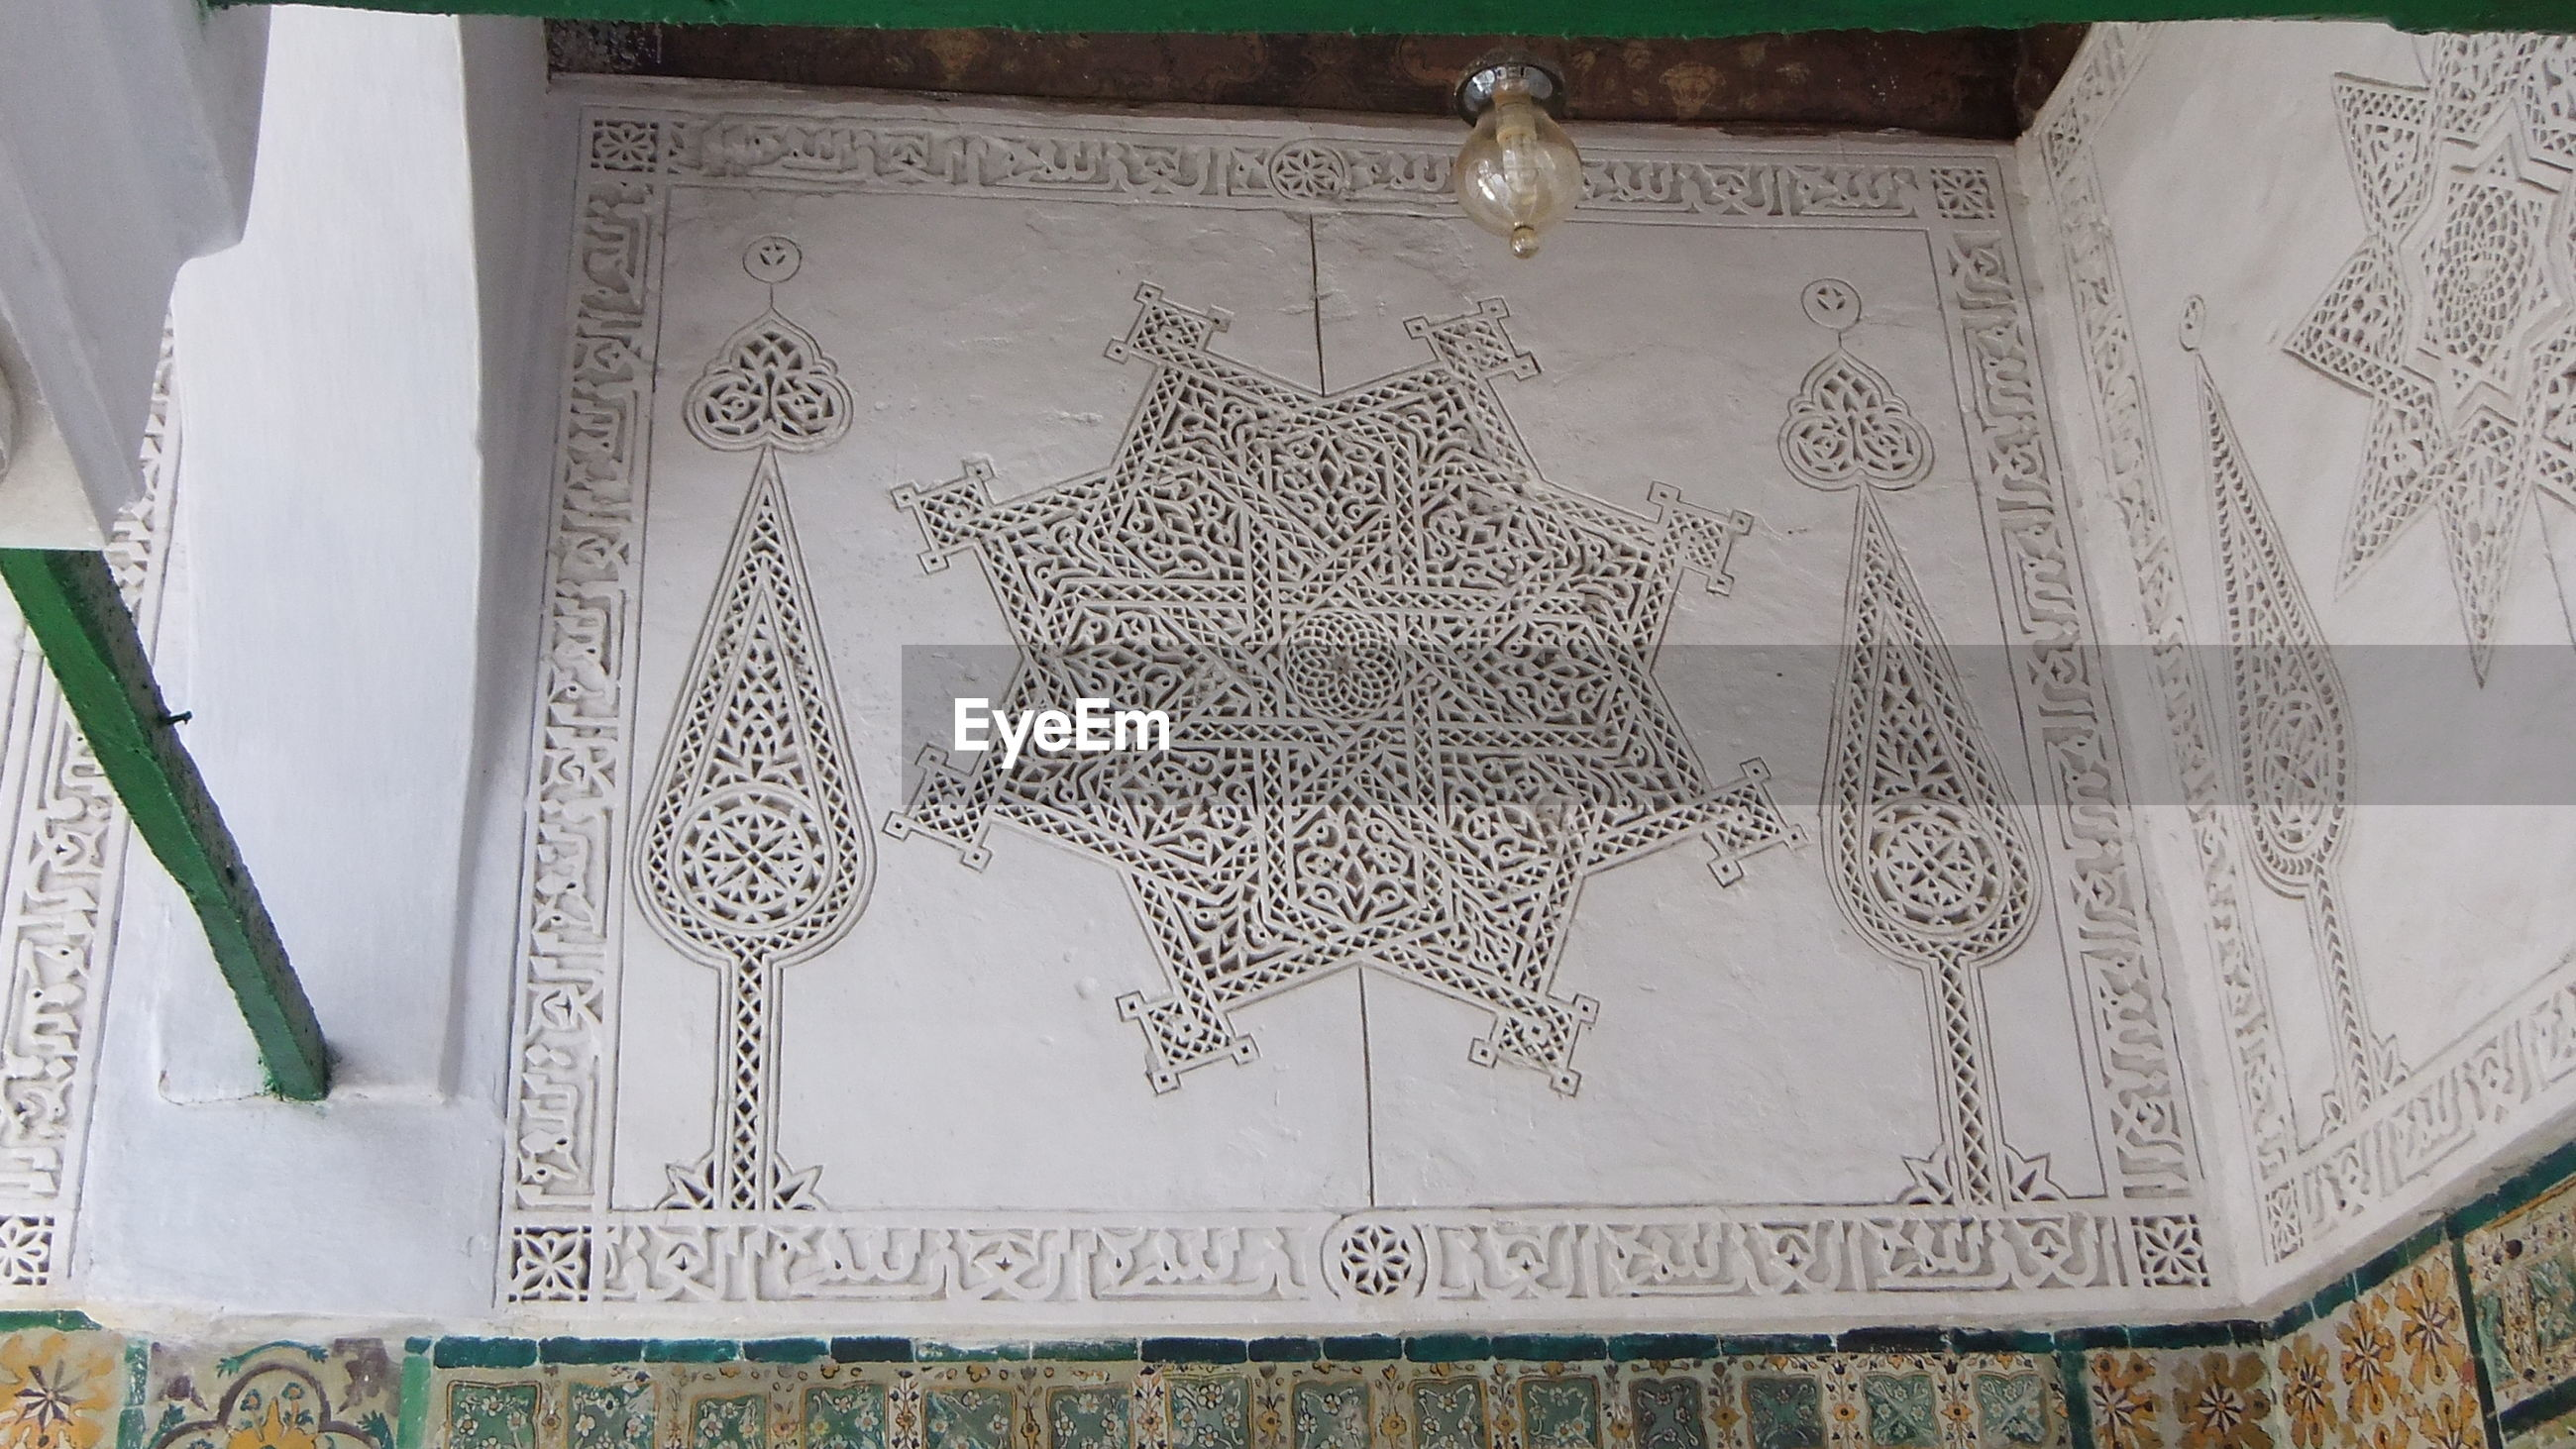 Low angle view of pattern on wall